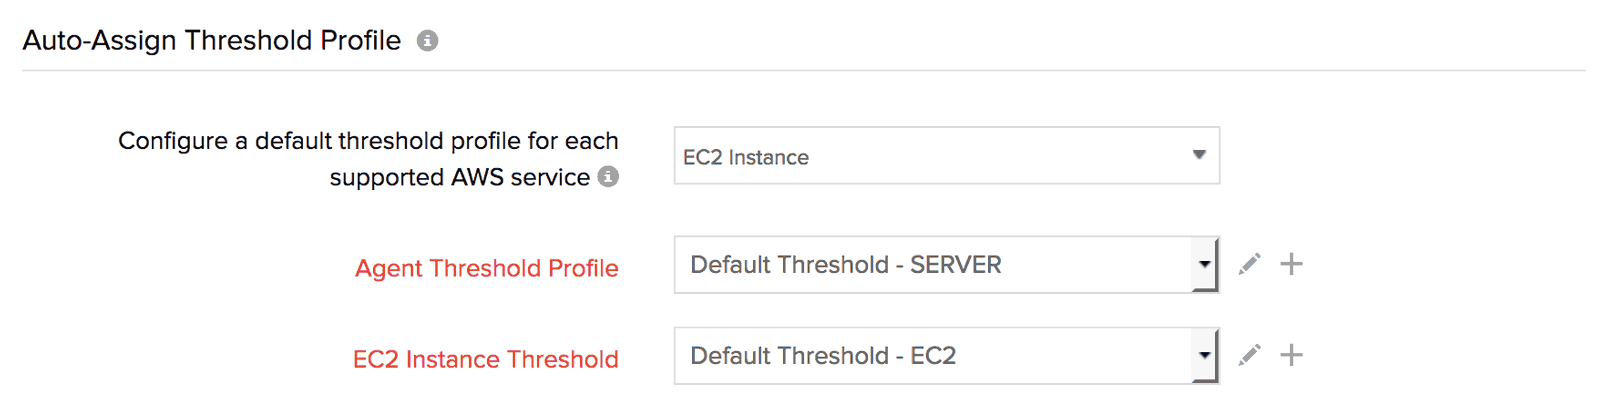 Configure a new default threshold profile